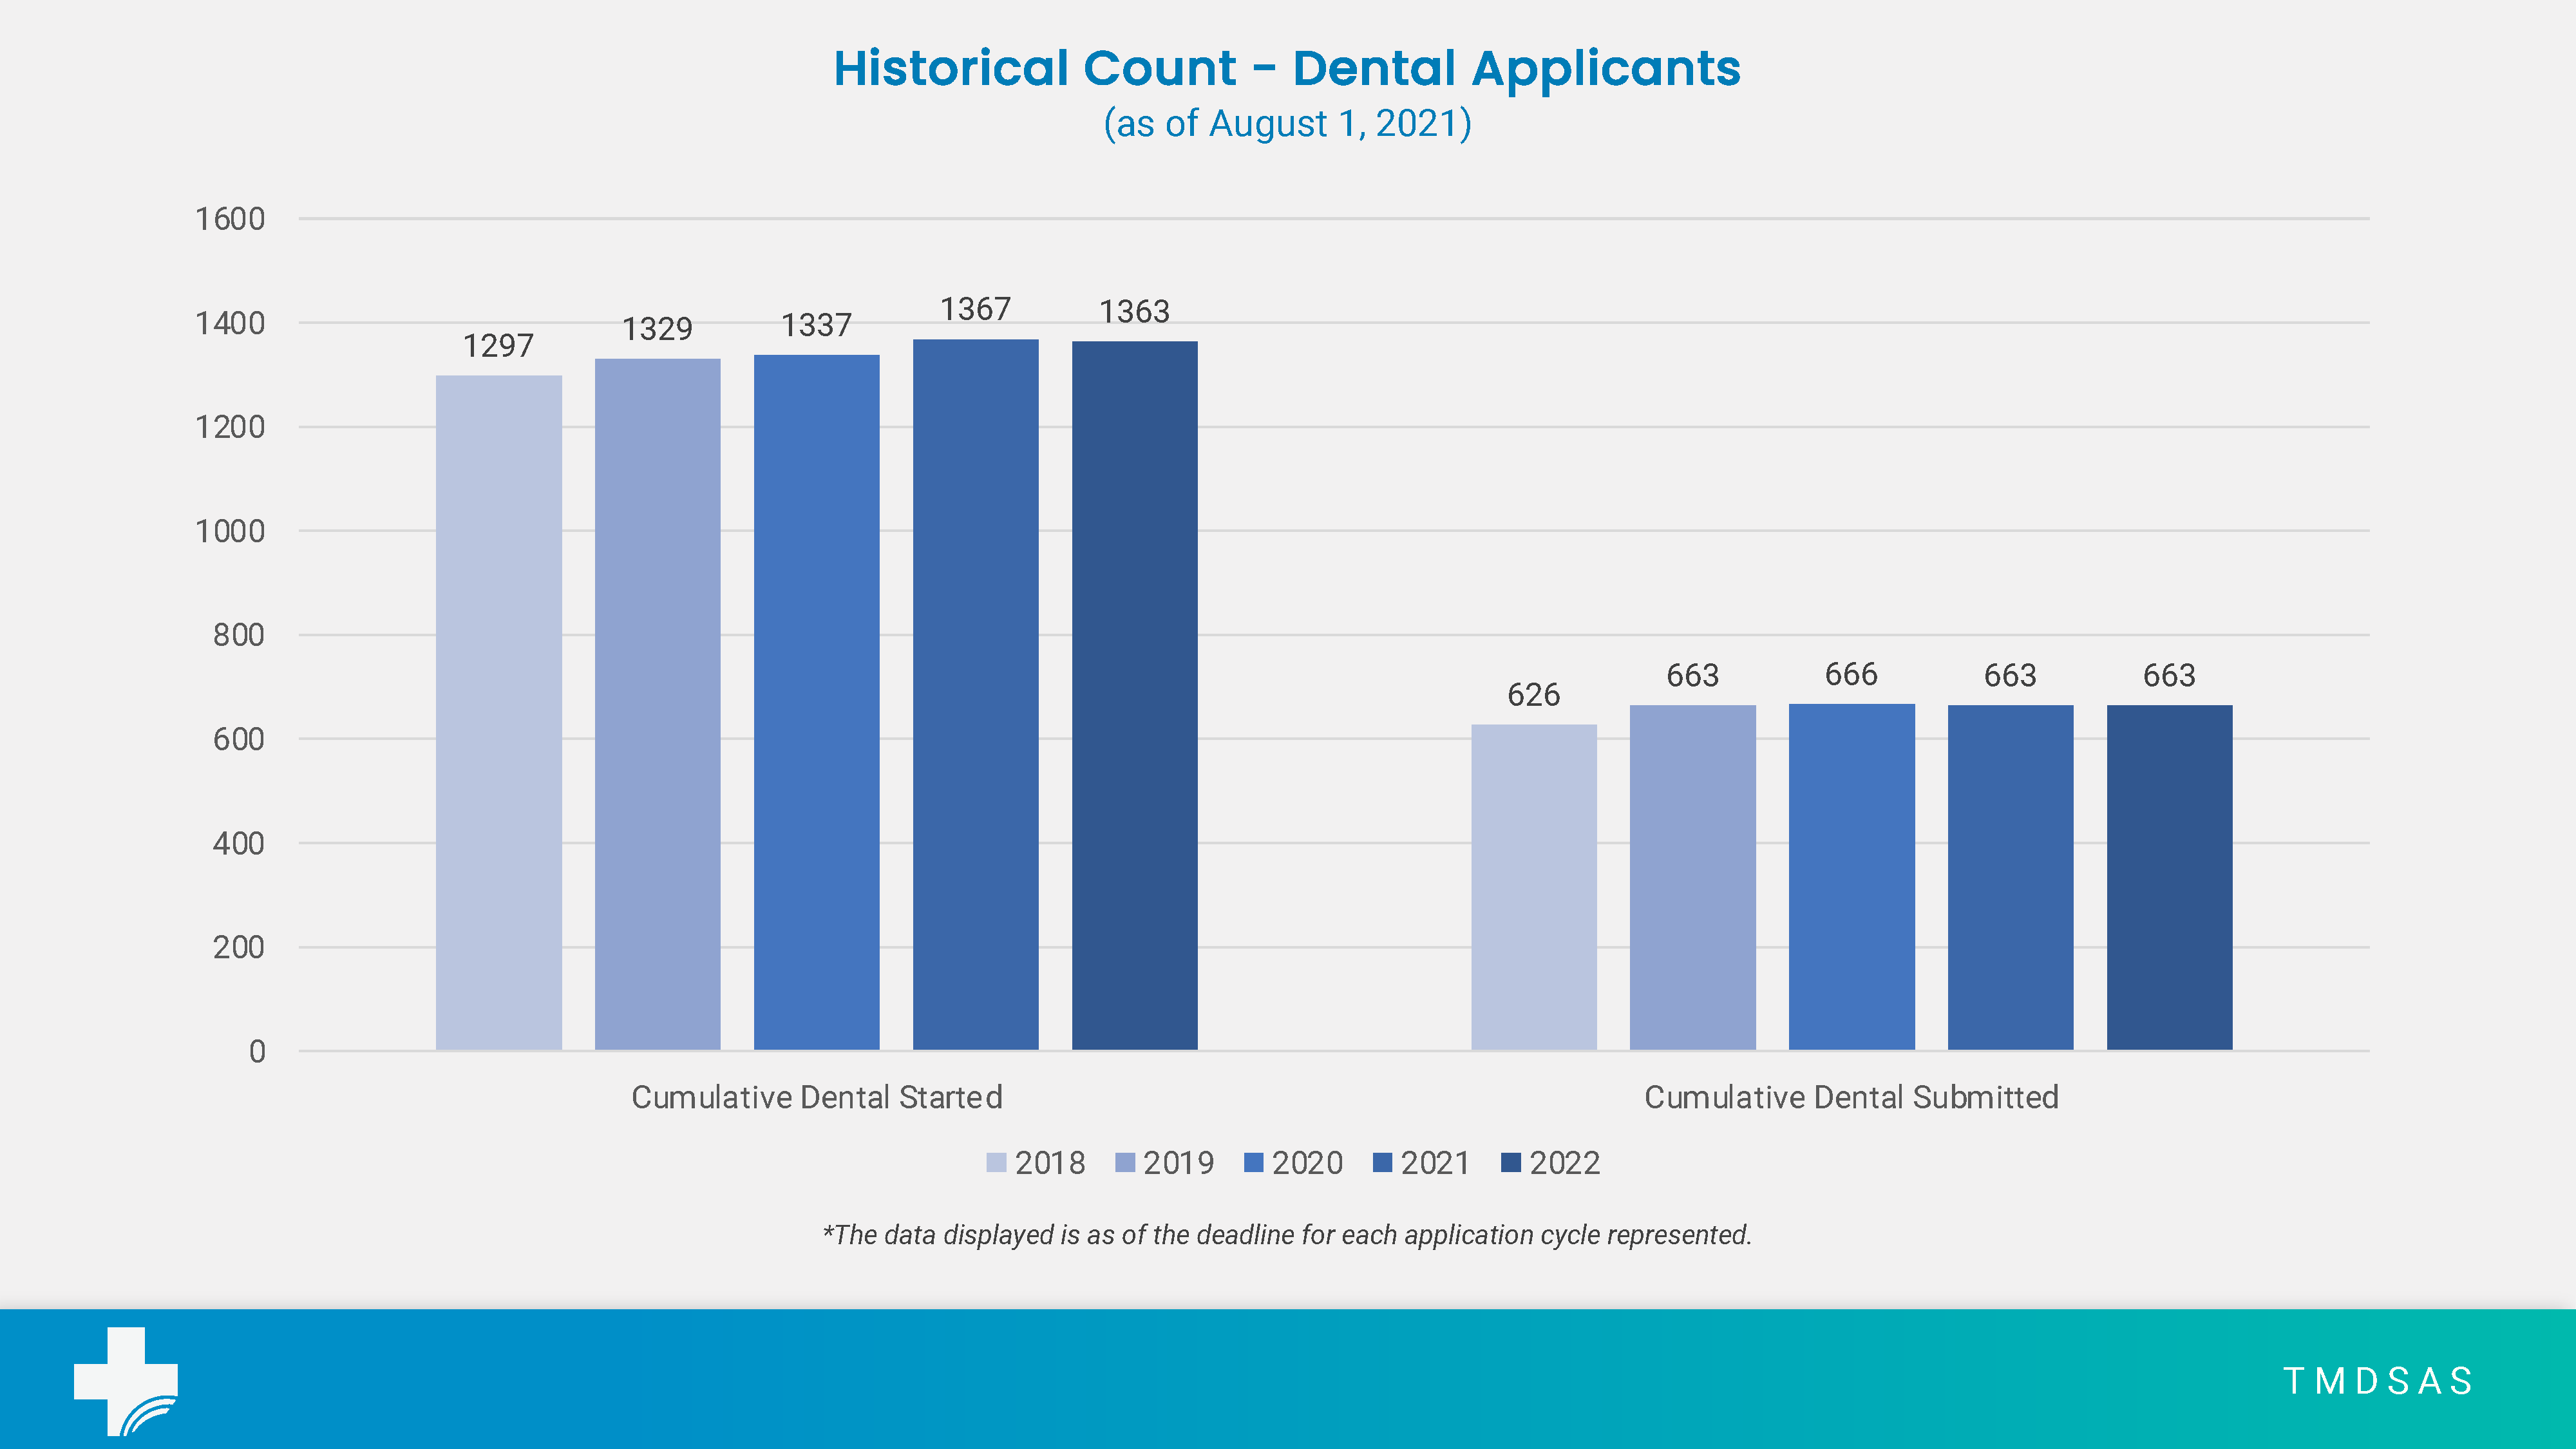 Total Dental Application Numbers for August 2021